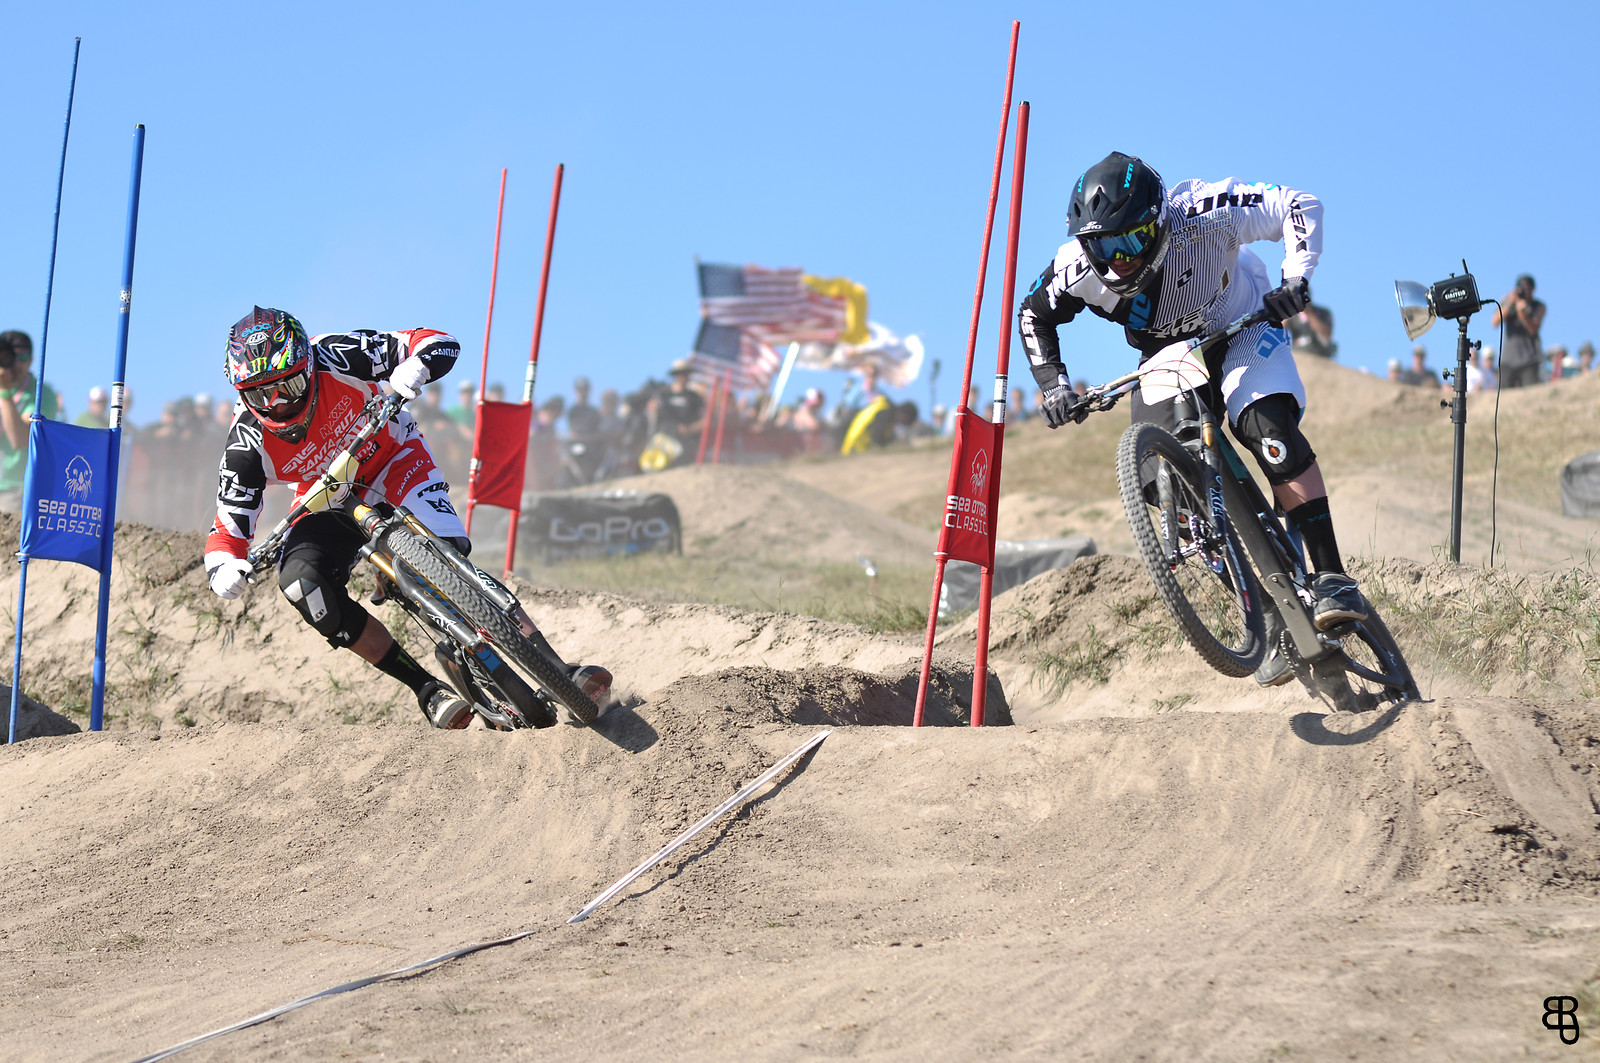 Peaty and Cole - BrianRaphael - Mountain Biking Pictures - Vital MTB